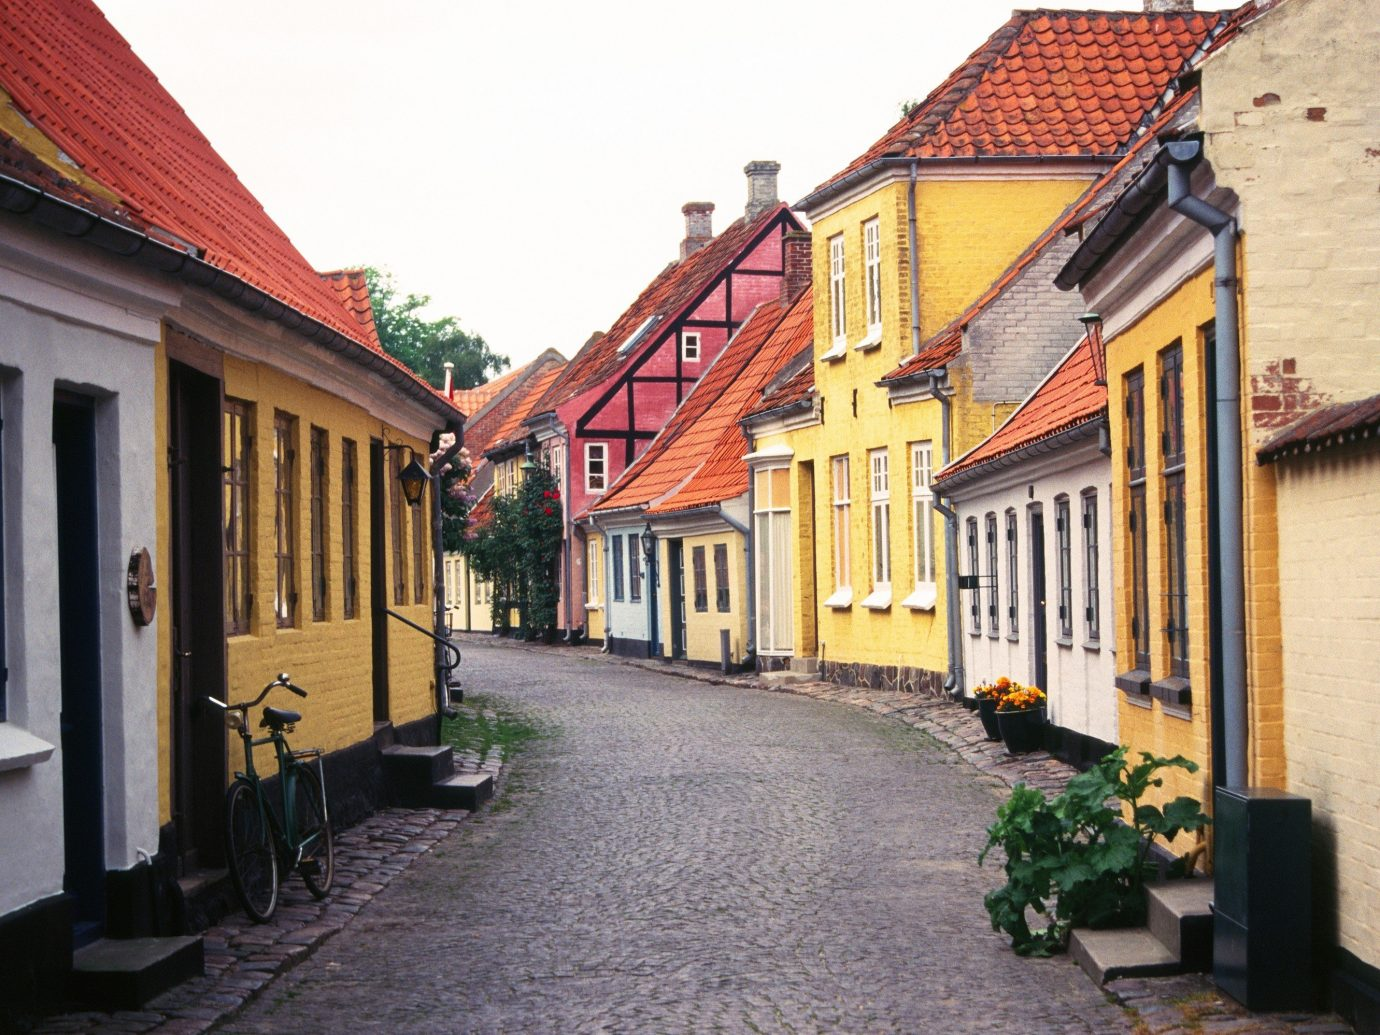 Arts + Culture building outdoor Town house road property neighbourhood street human settlement residential area alley Architecture brick Village facade infrastructure estate old cottage